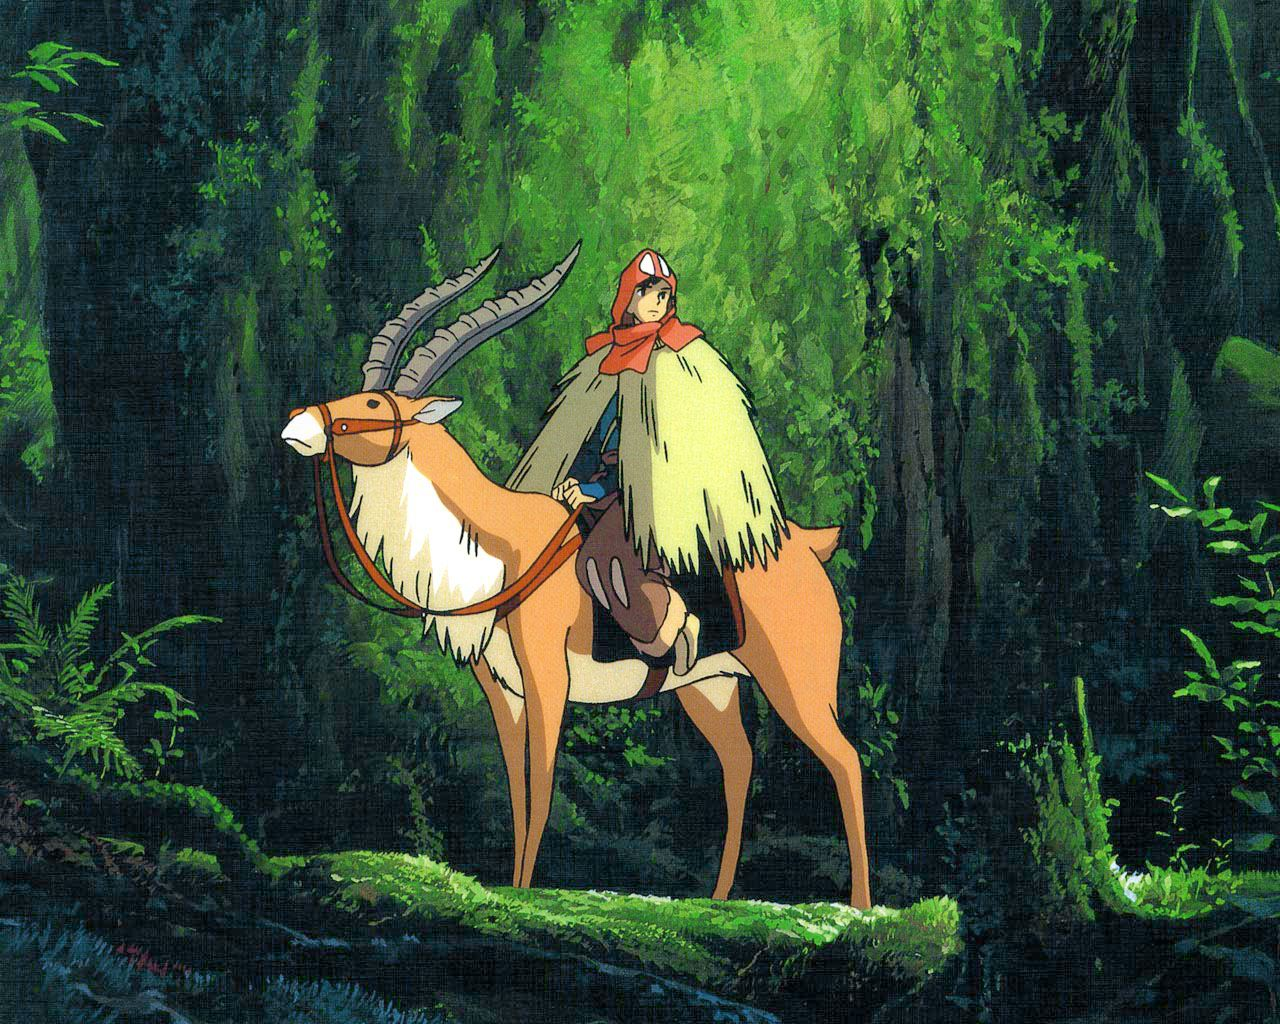 Princess Mononoke: Mononoke Hime - Ashitaka and Yakul on a ...